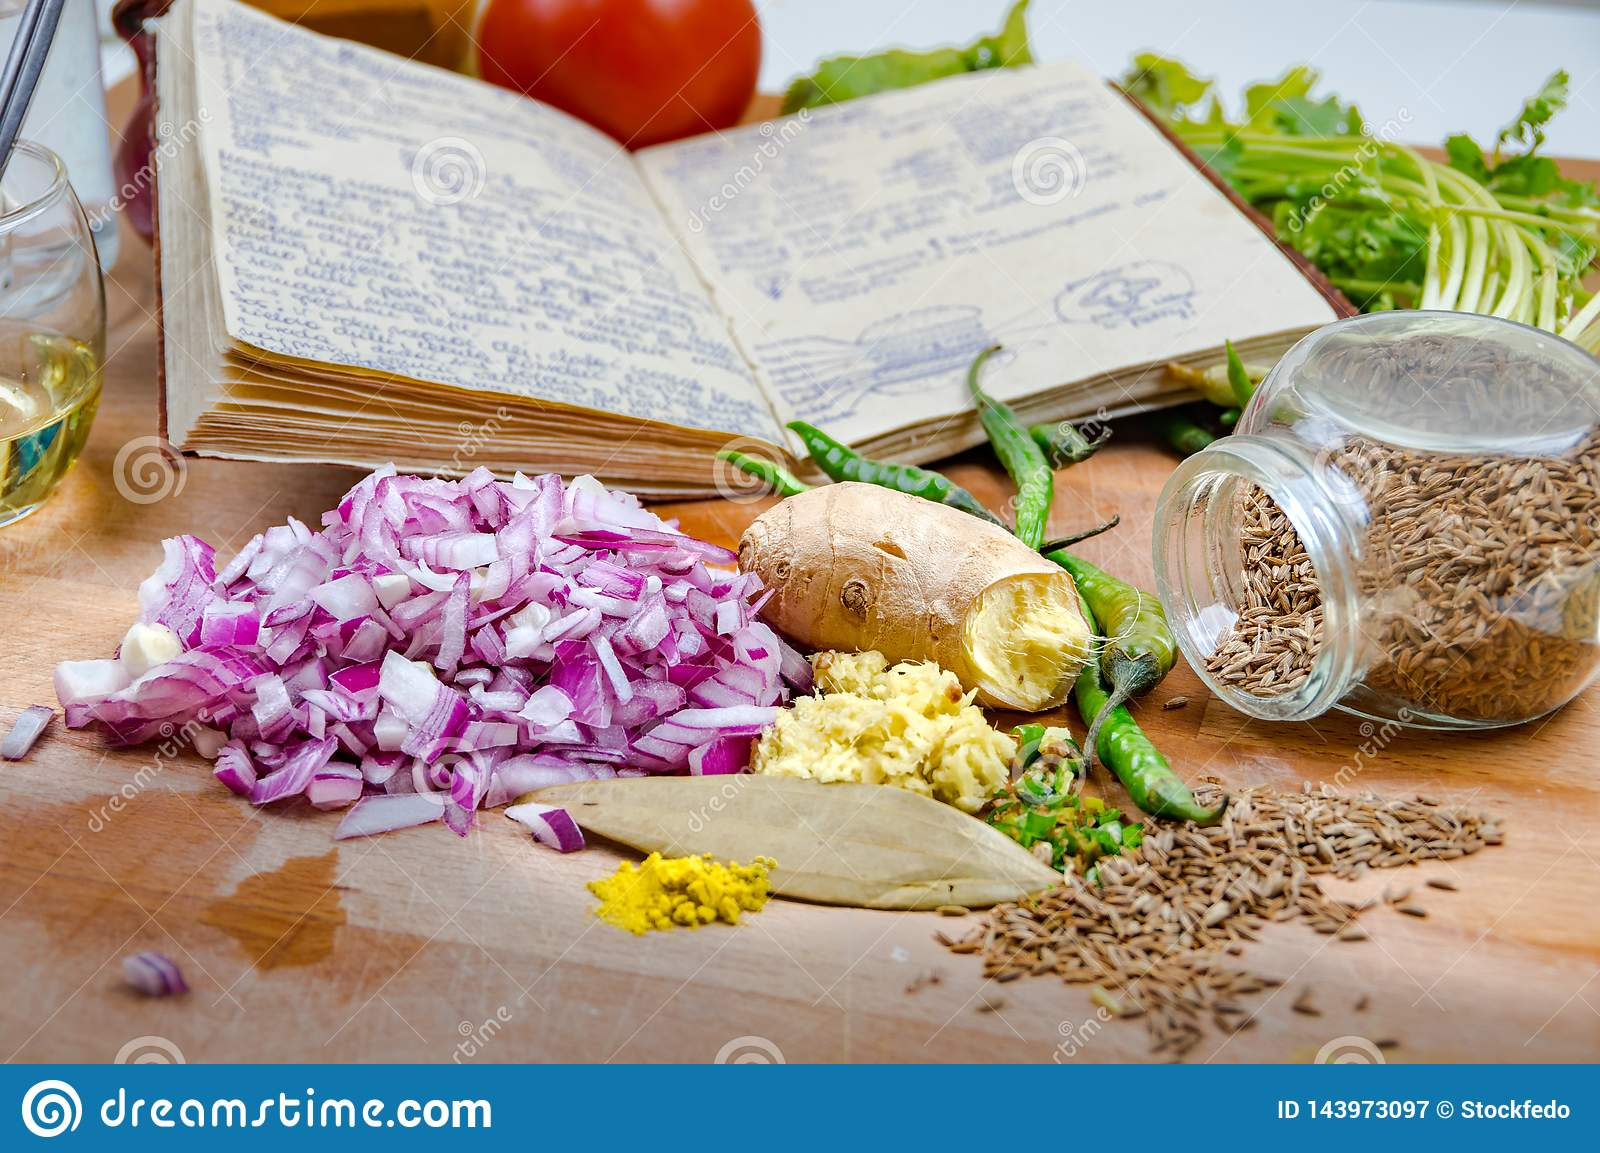 Notes with recipes surrounded by spices and vegetables on a wooden table in the kitchen